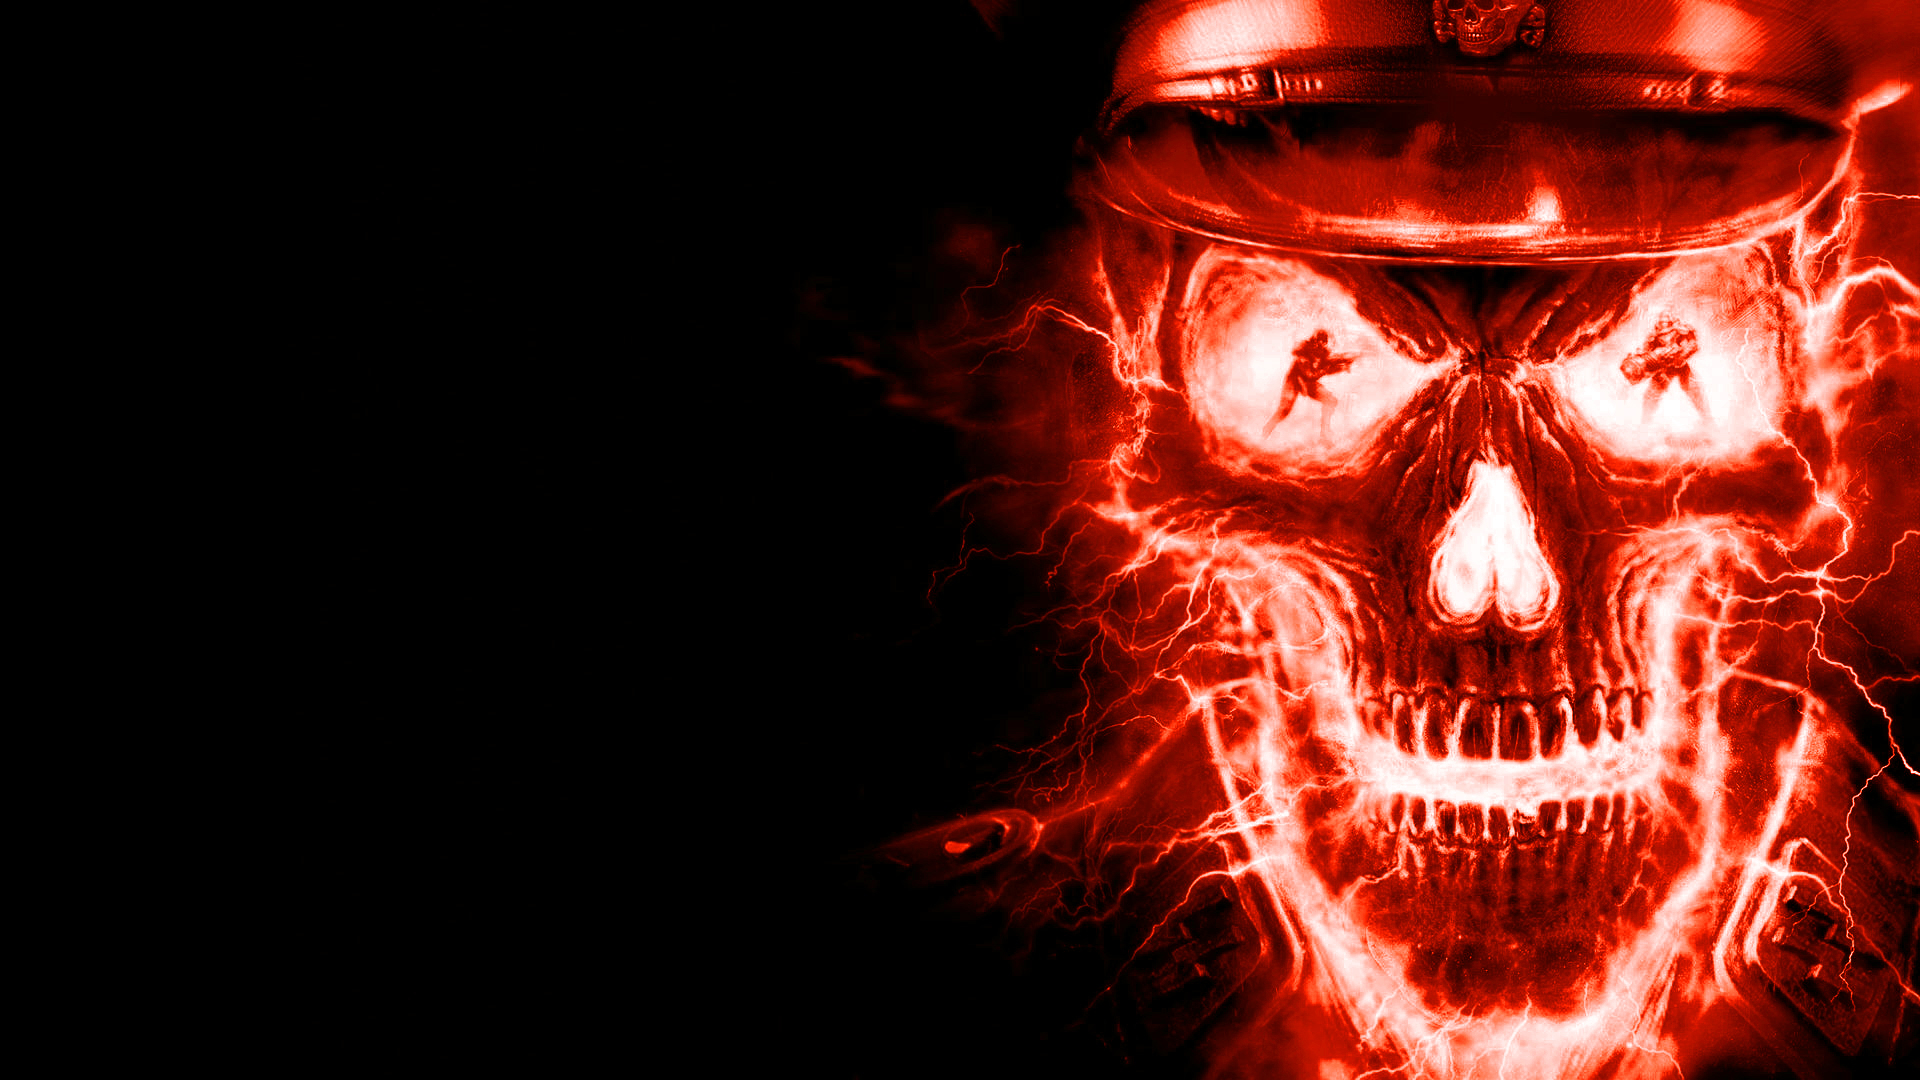 Red Flaming Skull Wallpaper - WallpaperSafari